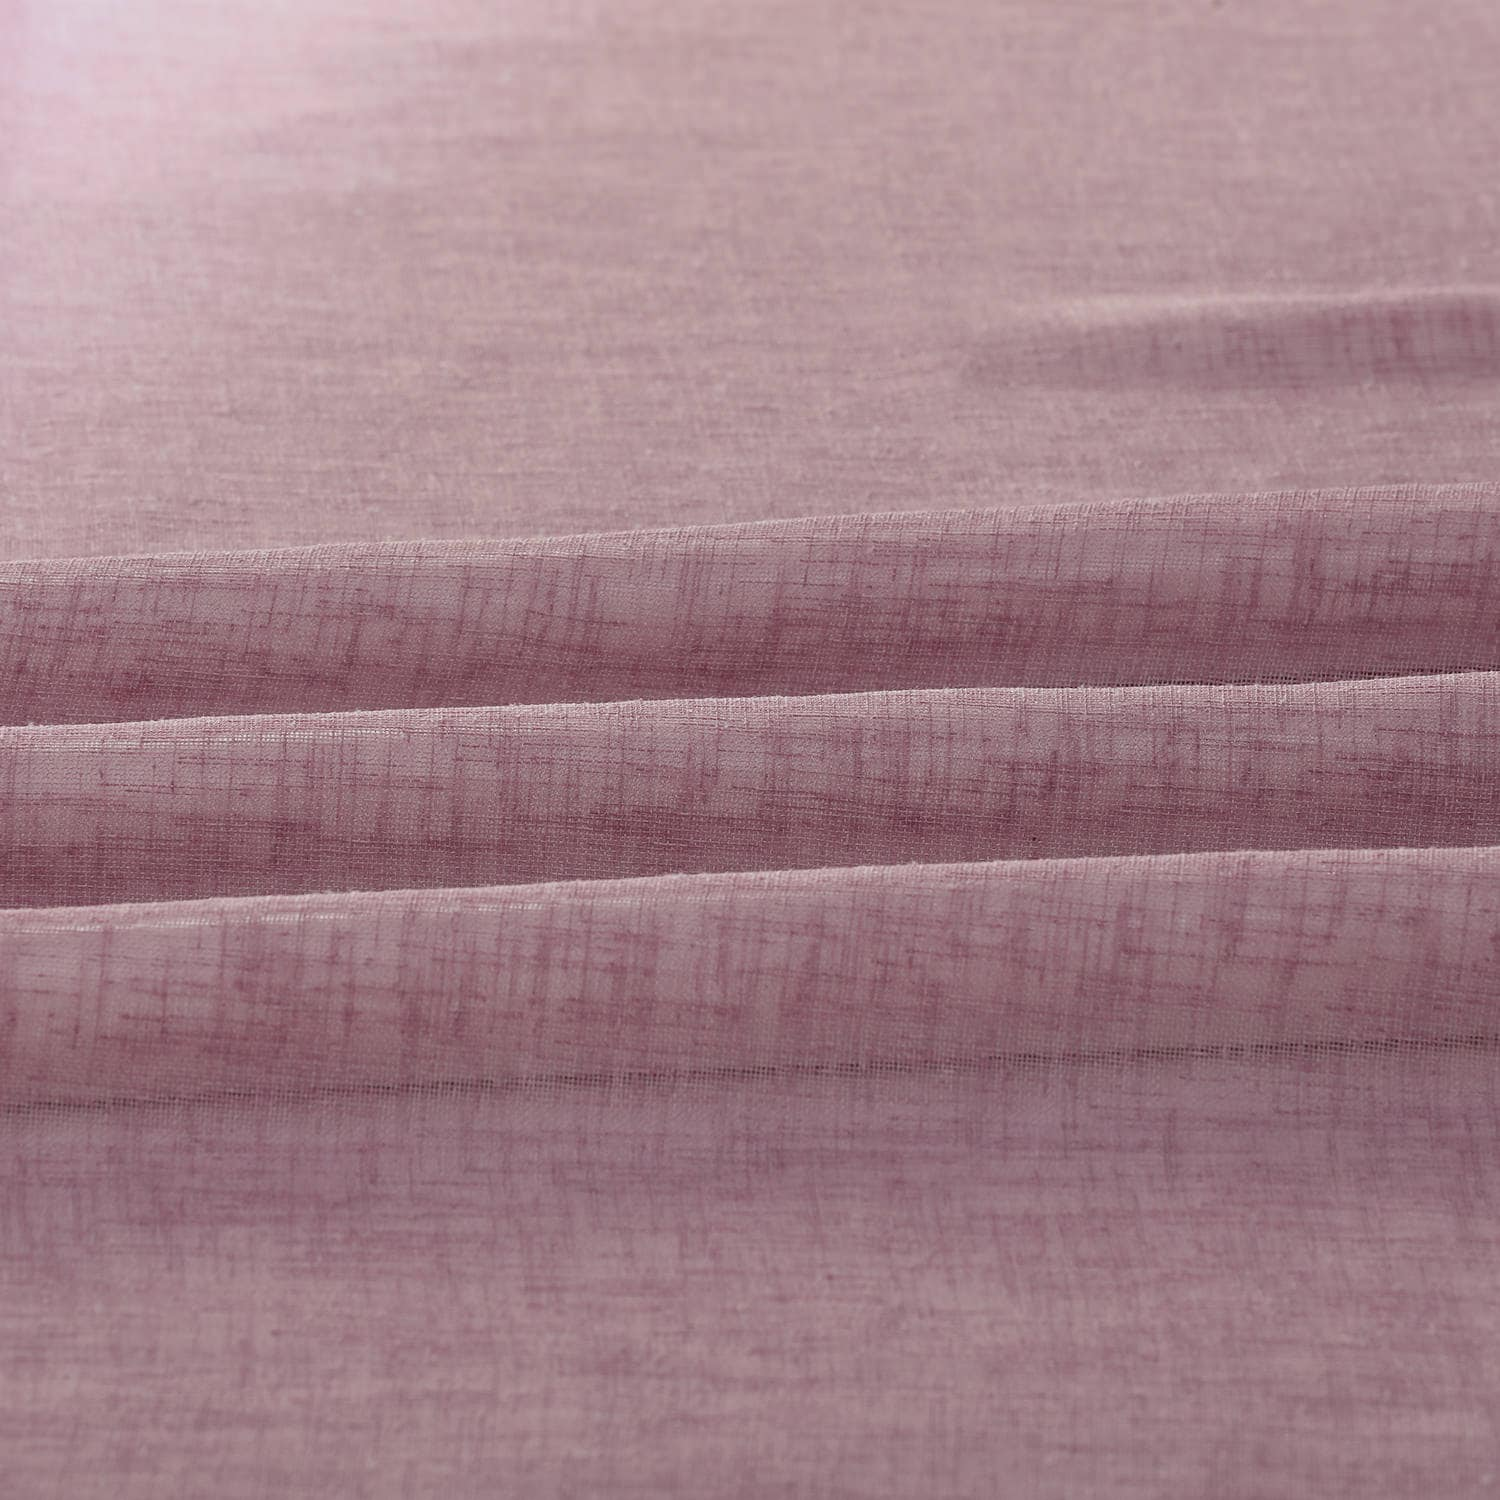 Blackberry Cream Solid Faux Linen Sheer Fabric